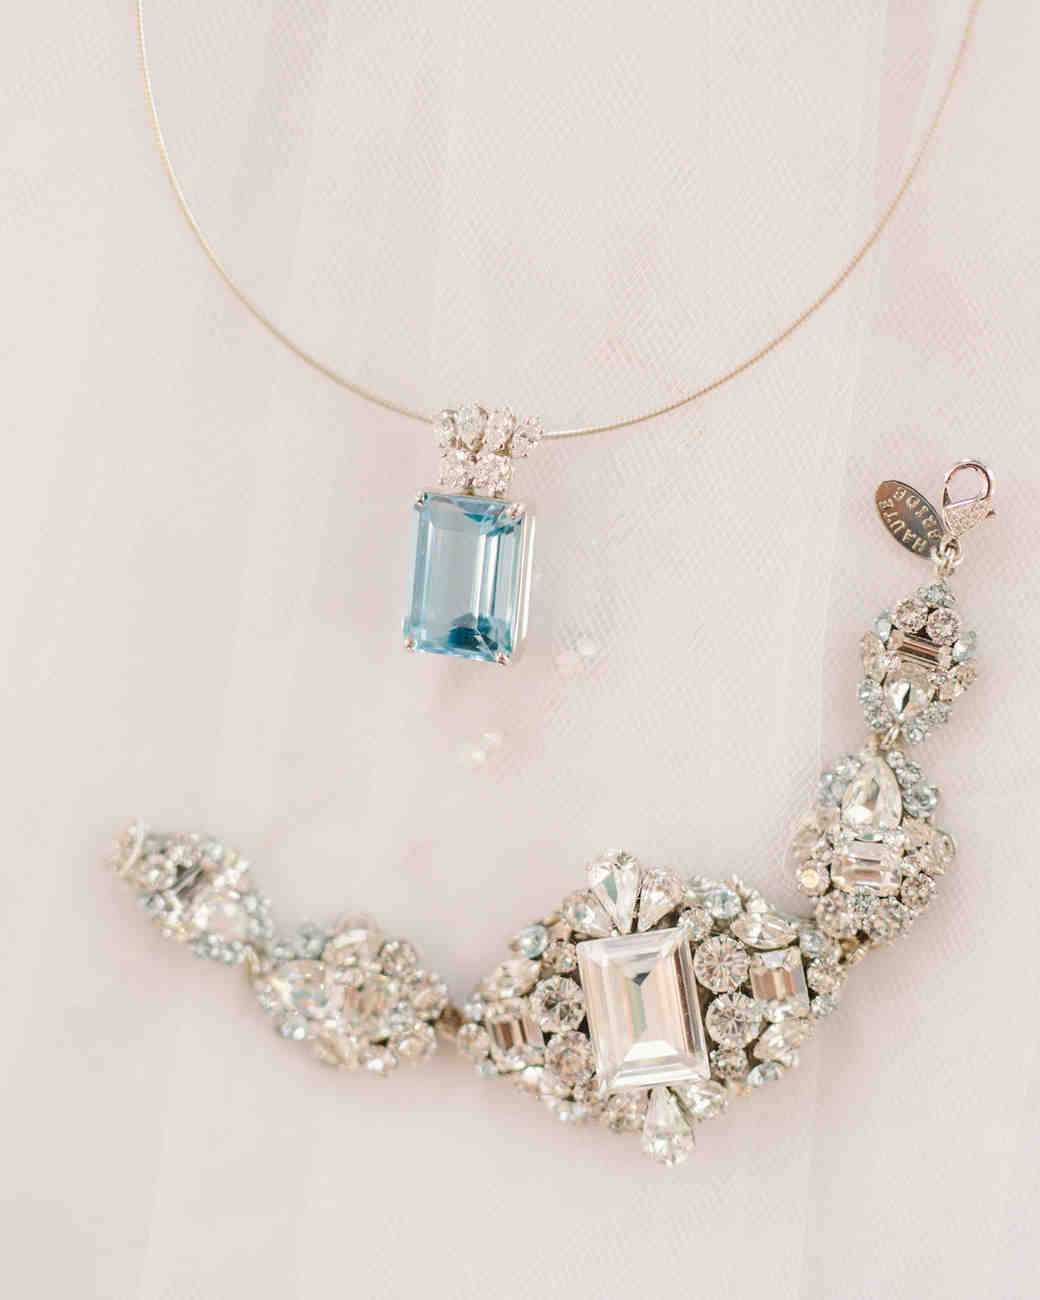 lizzy-bucky-wedding-jewelry-159-s111857-0315.jpg